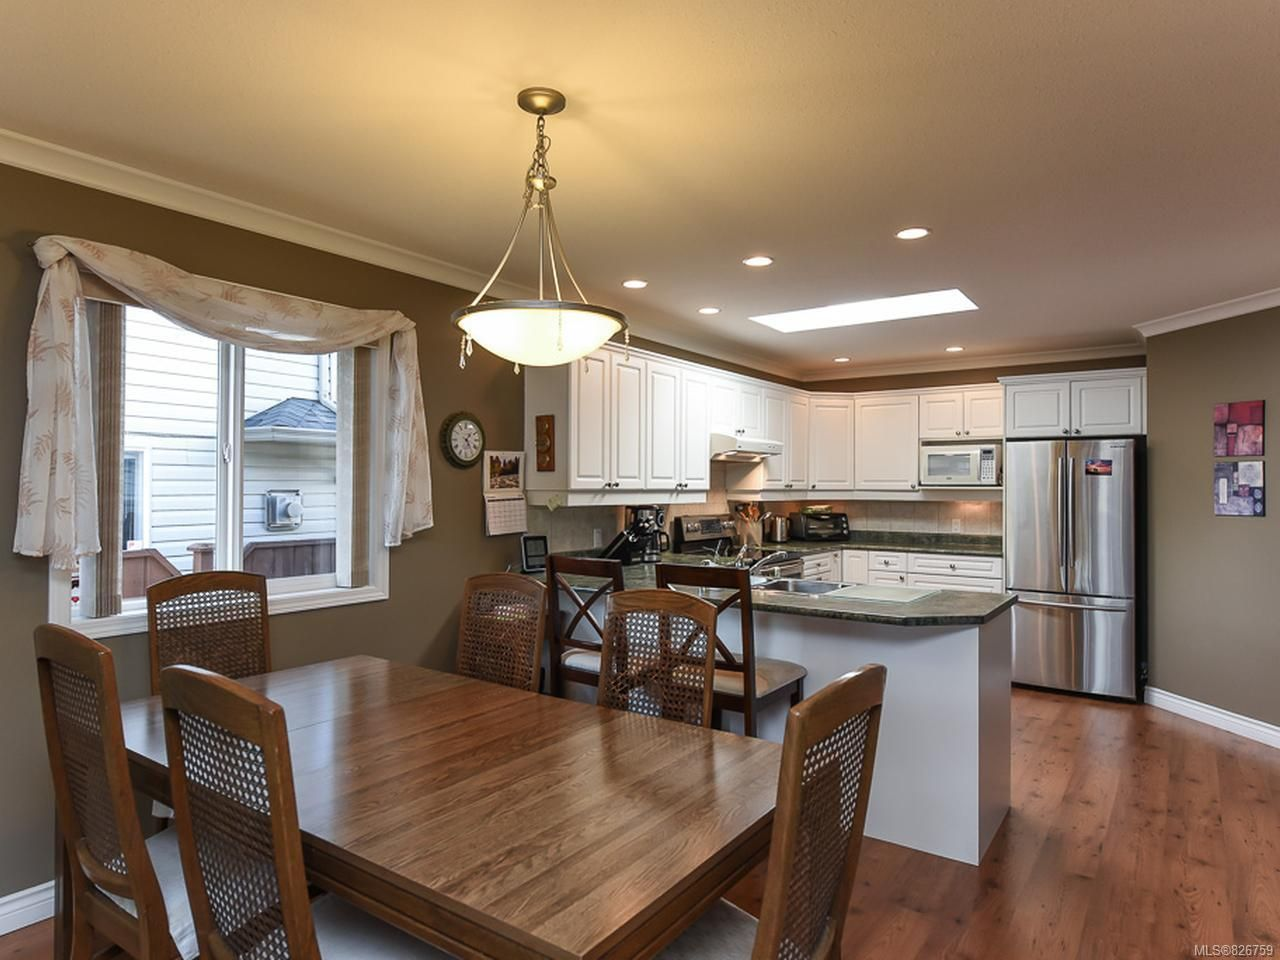 Photo 8: Photos: 2165 Stirling Cres in COURTENAY: CV Courtenay East House for sale (Comox Valley)  : MLS®# 826759